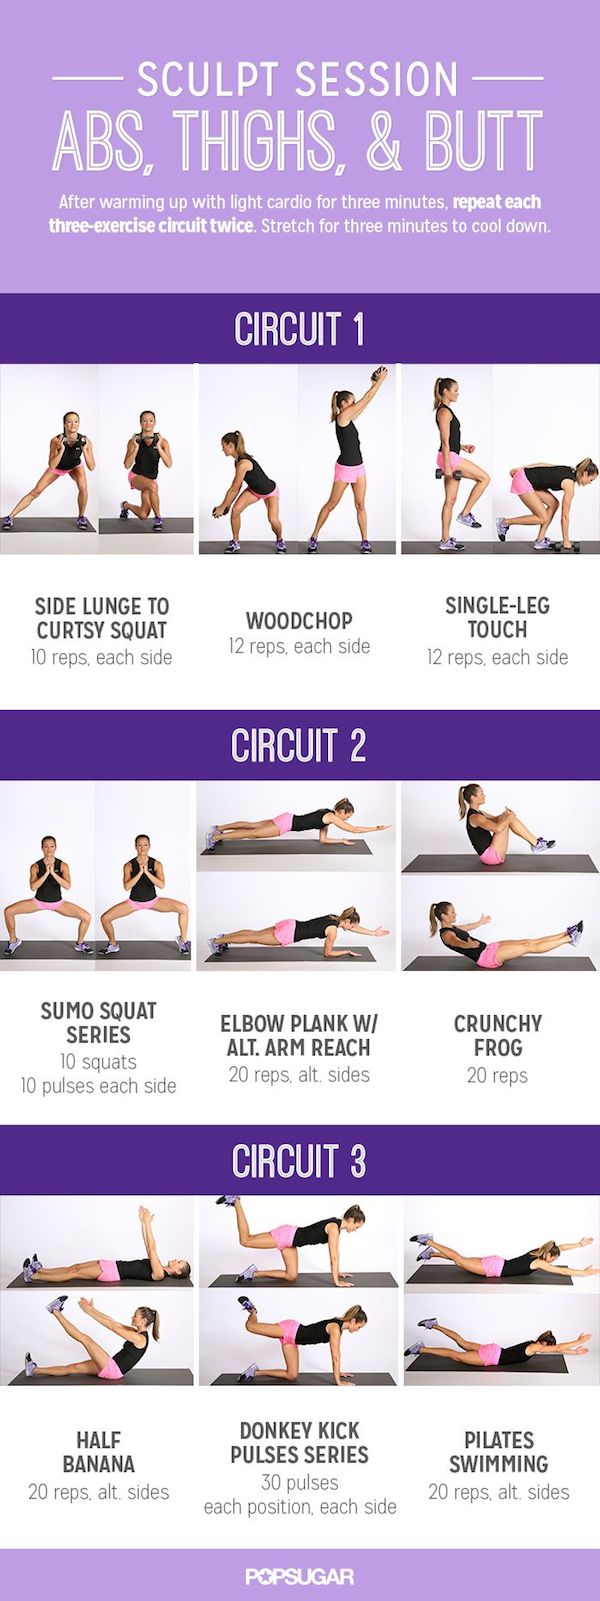 how to get better abs at home